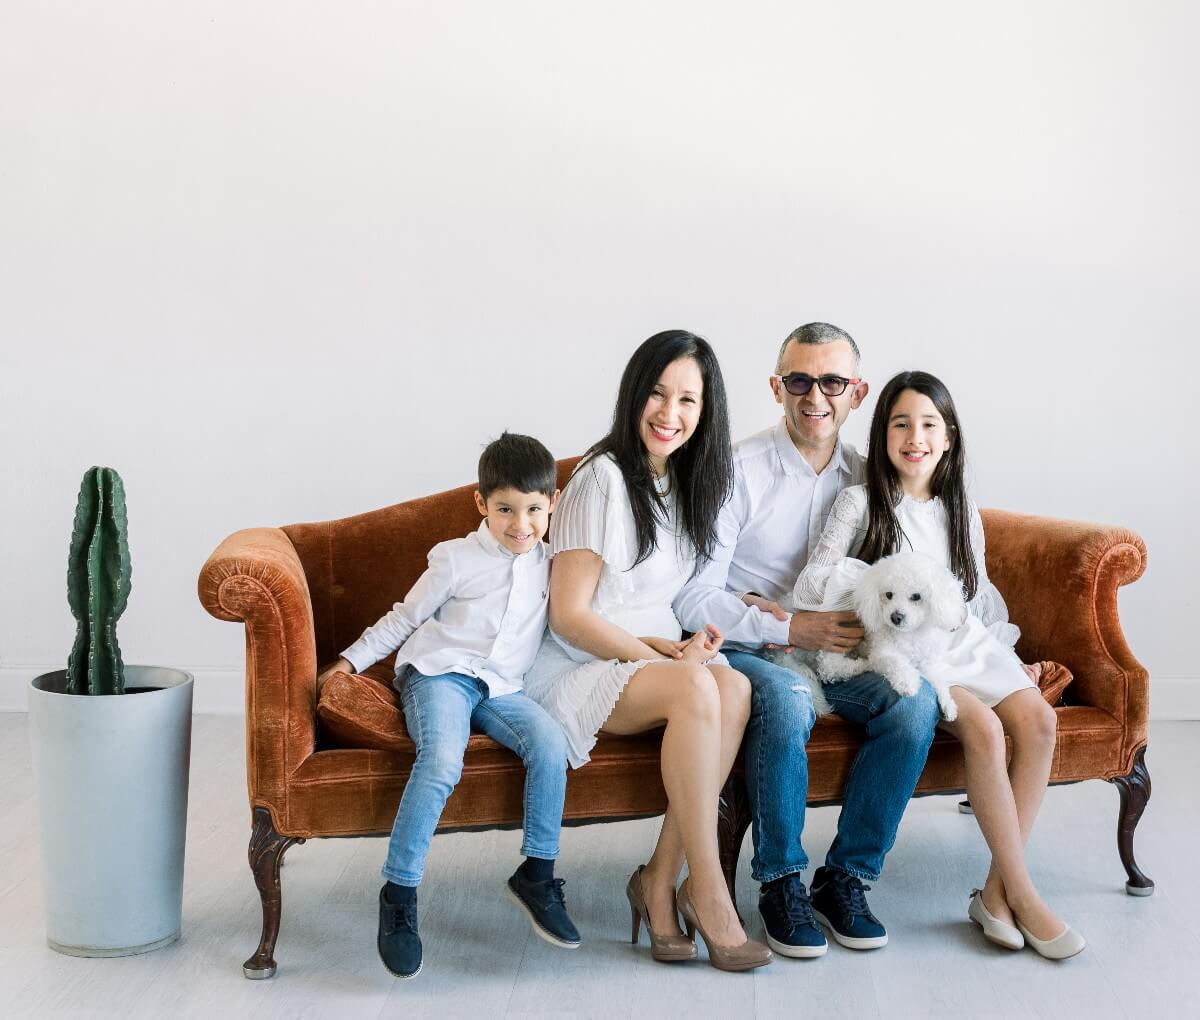 the Calderon family on a couch, started shining brownies